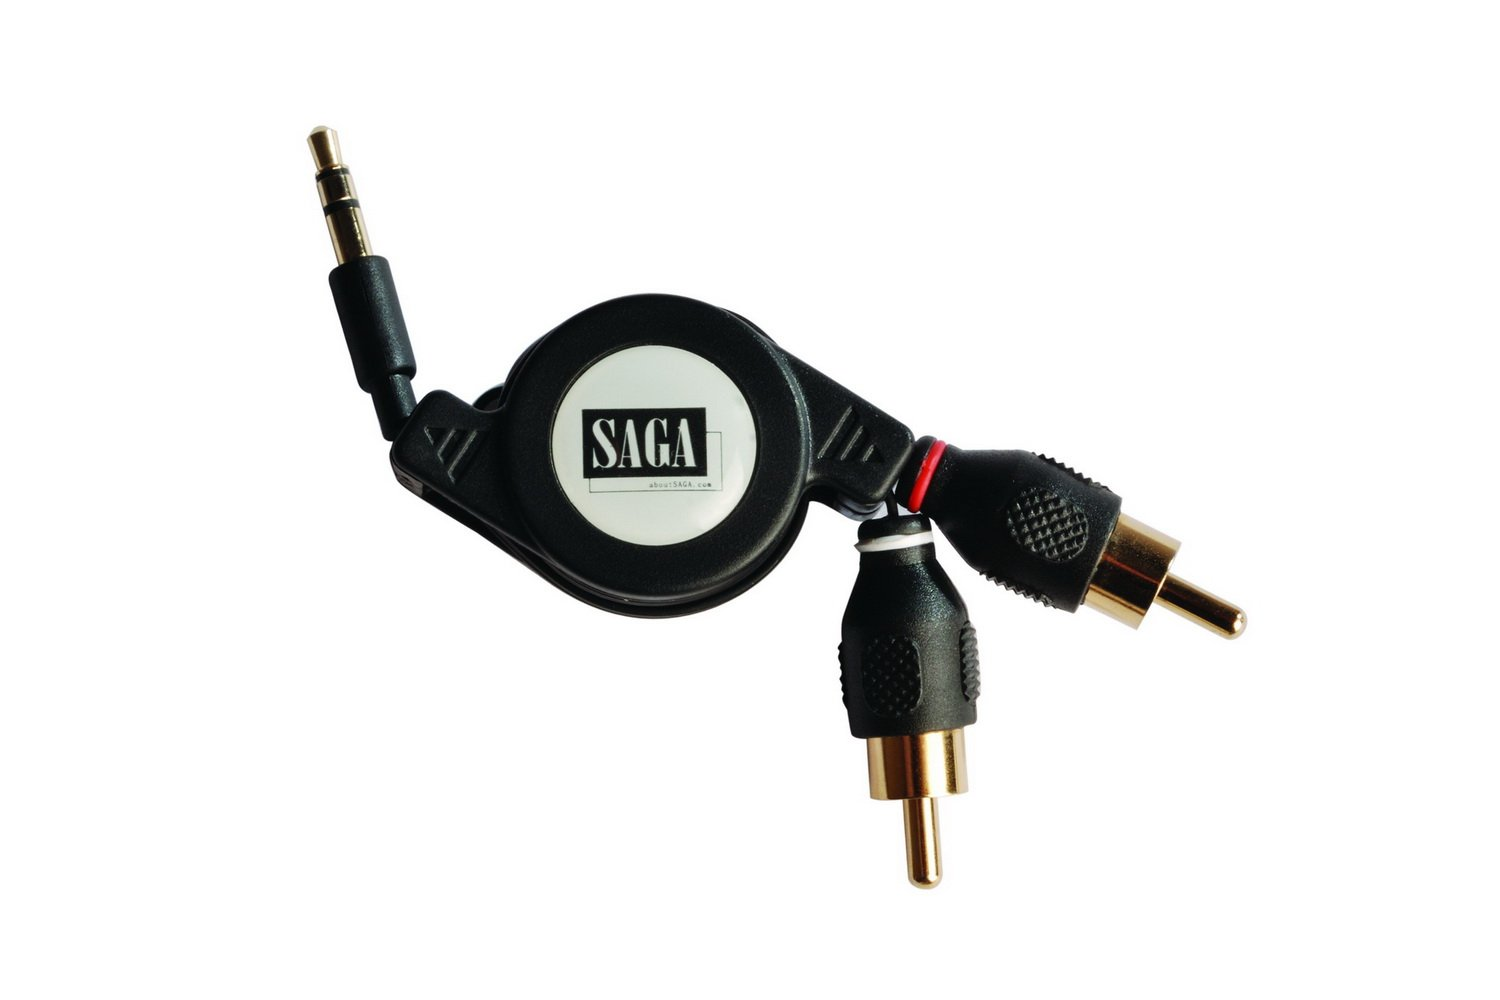 aboutSAGA 2.6ft Retractable 3.5mm Mini plug to 2 RCA plugs